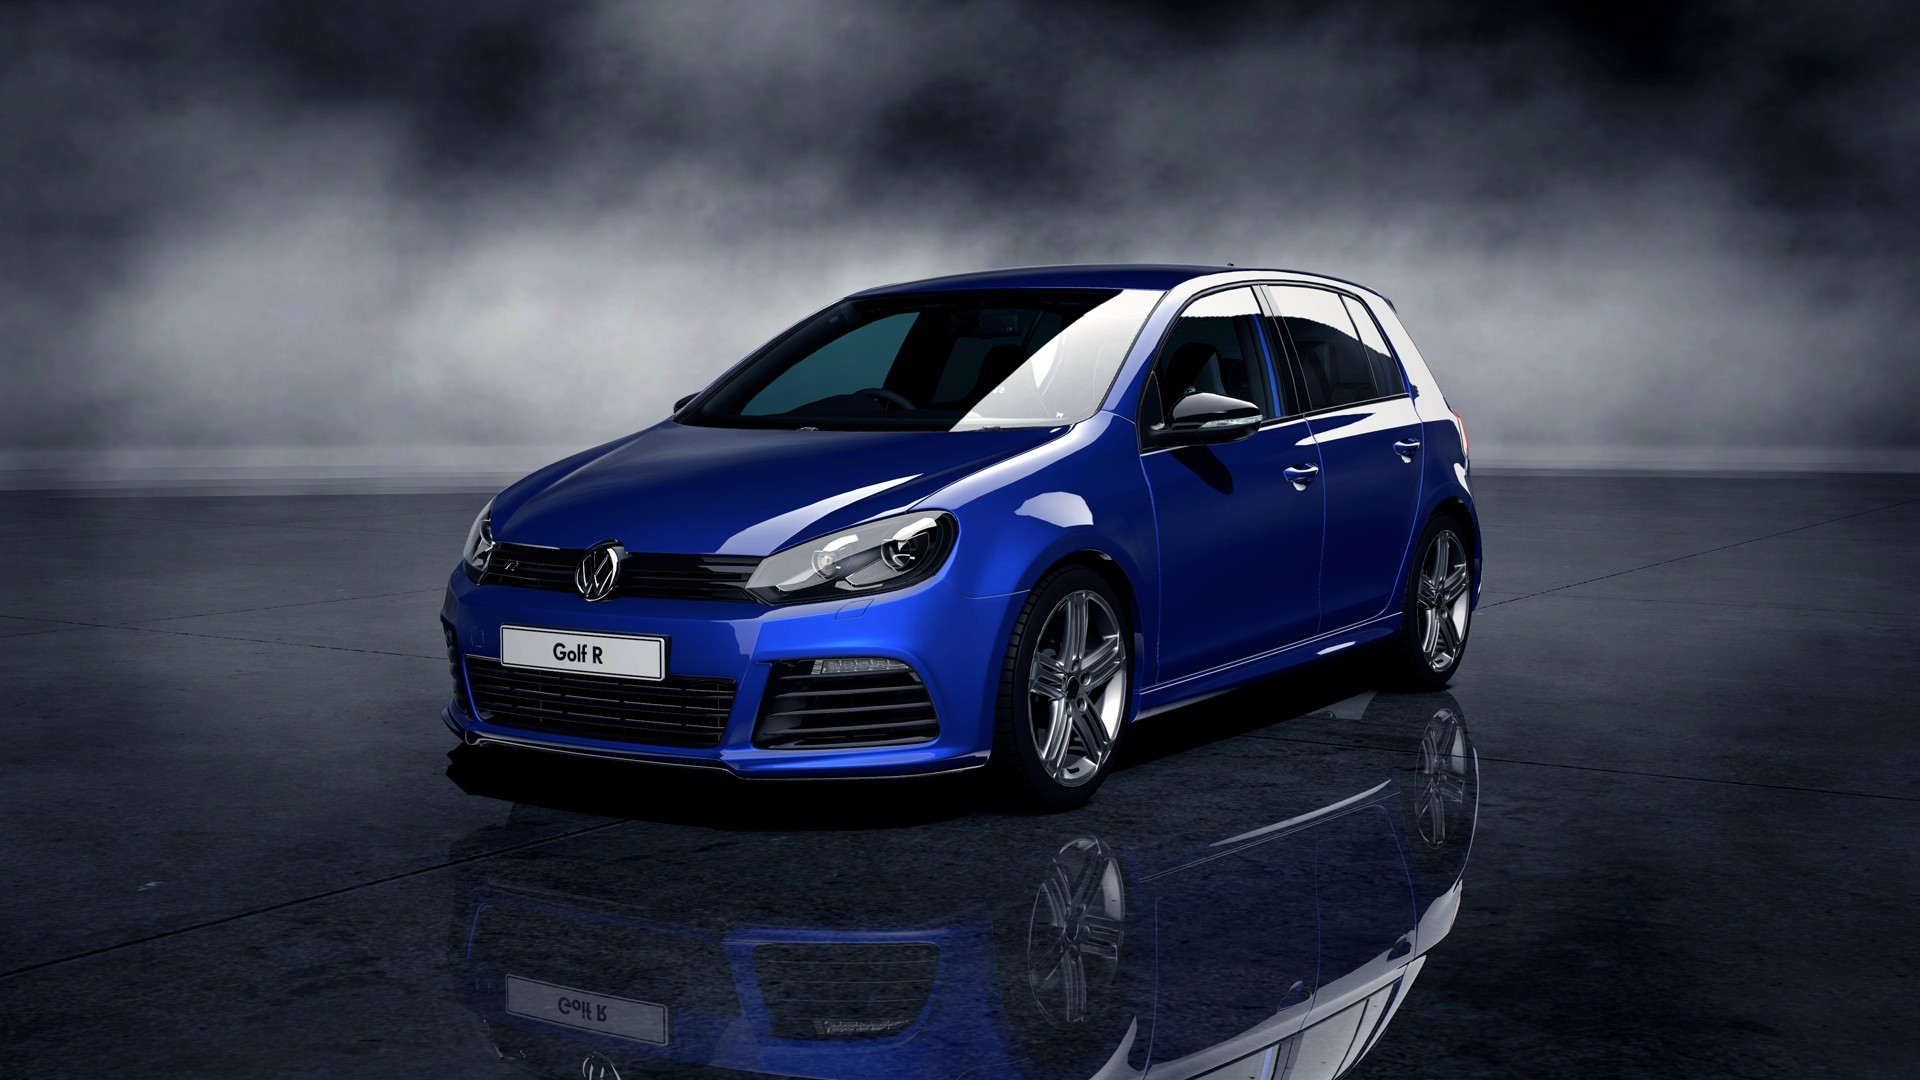 Vw Golf R Wallpaper 60 Images